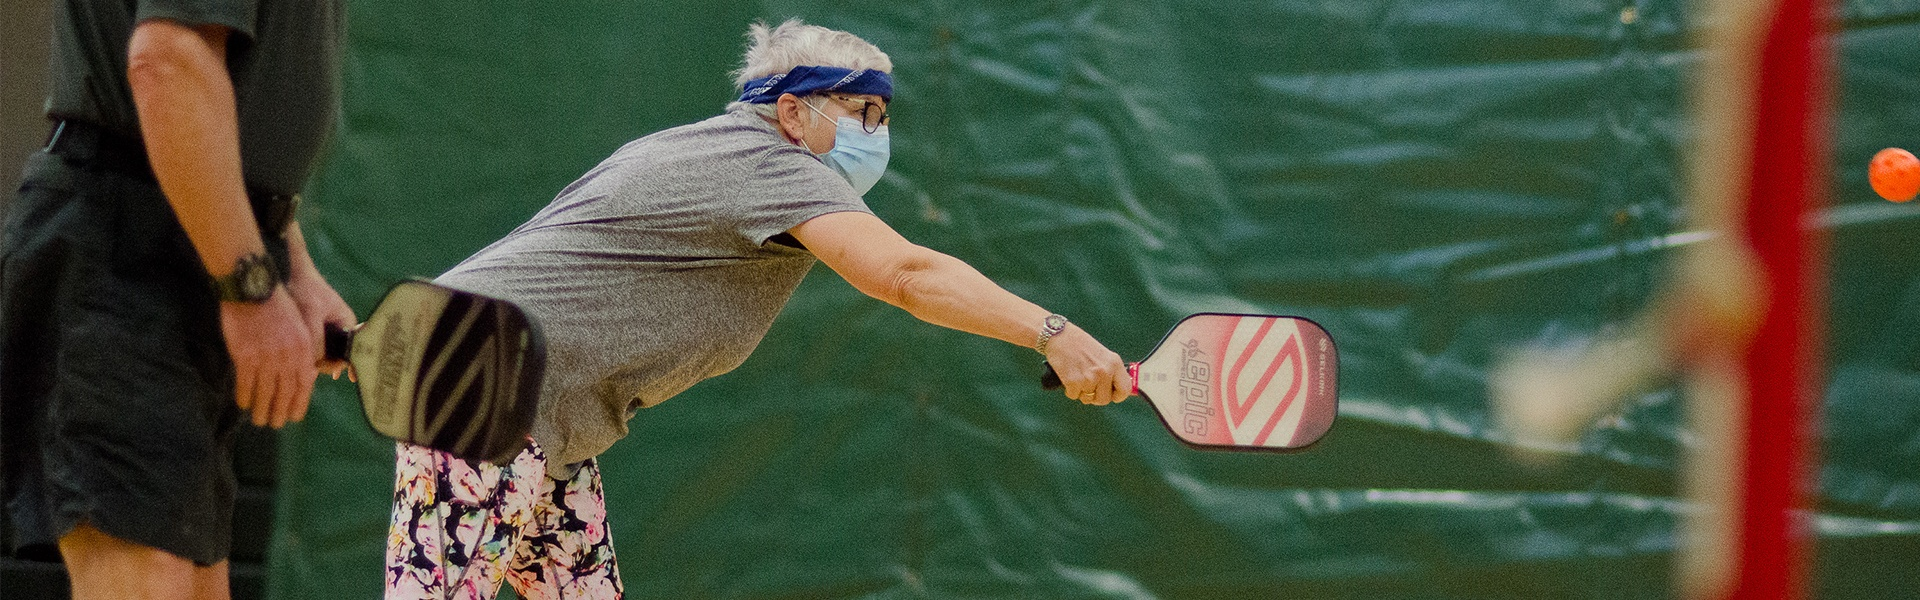 Indoor Adult Pickleball